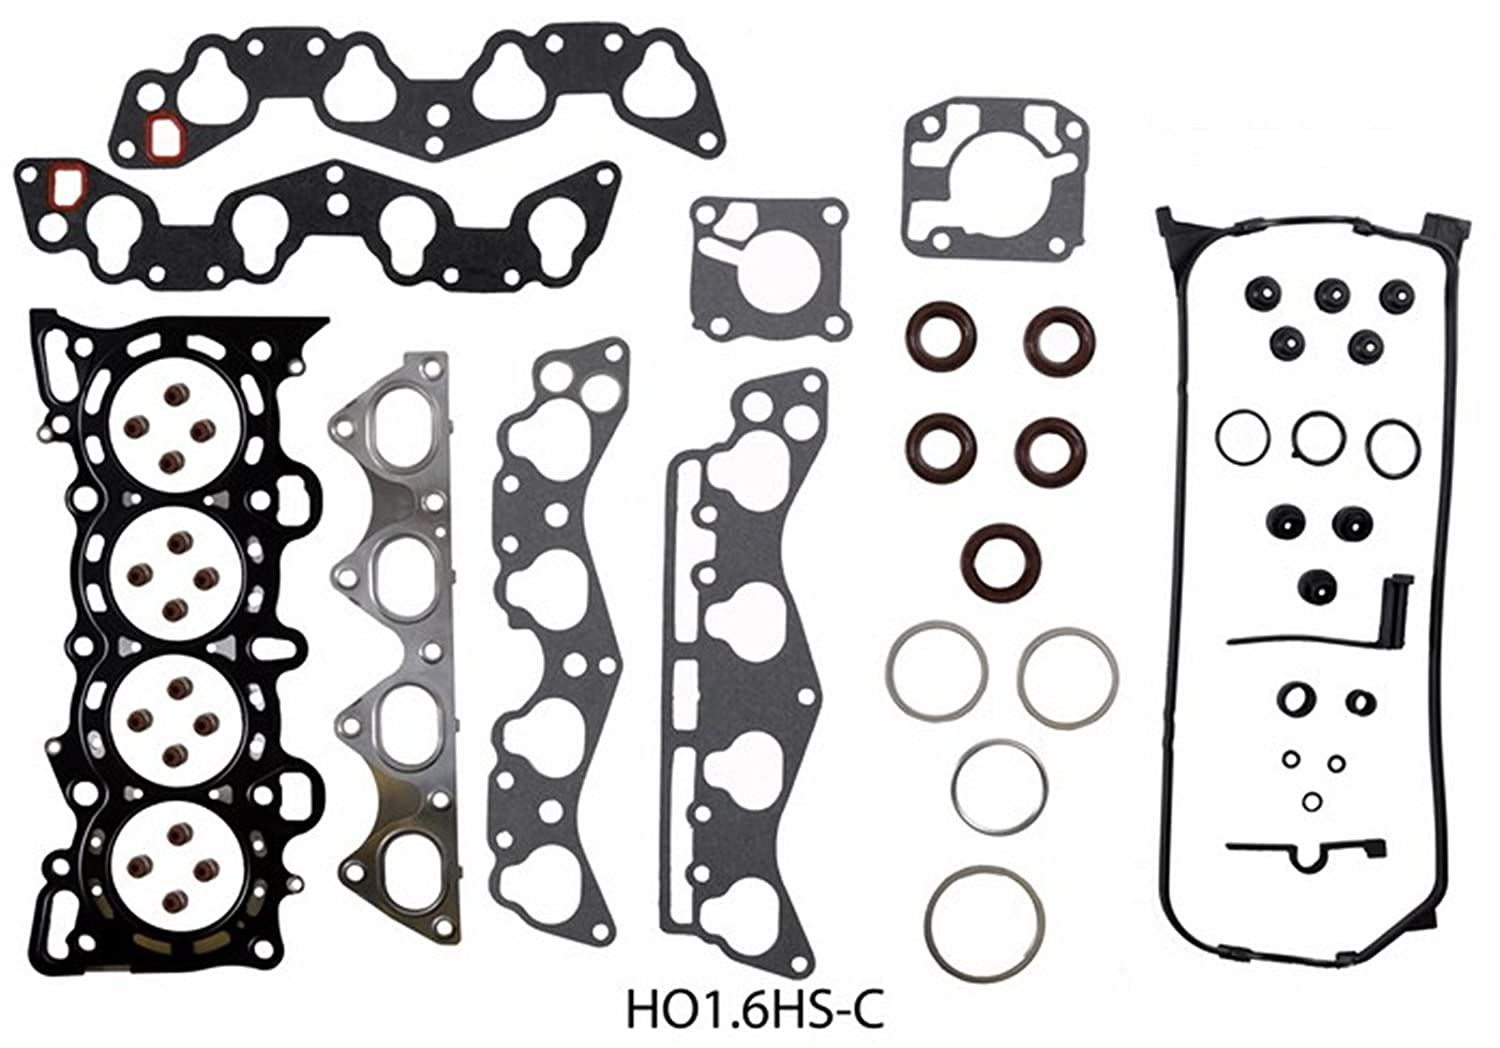 ReRing Kit w/Full Gasket Set Rings Bearings FITS Engines & Engine Parts 2006-2012 Mazda 2.3L DOHC MZR-T Turbo Speed3 Speed6 CX-7